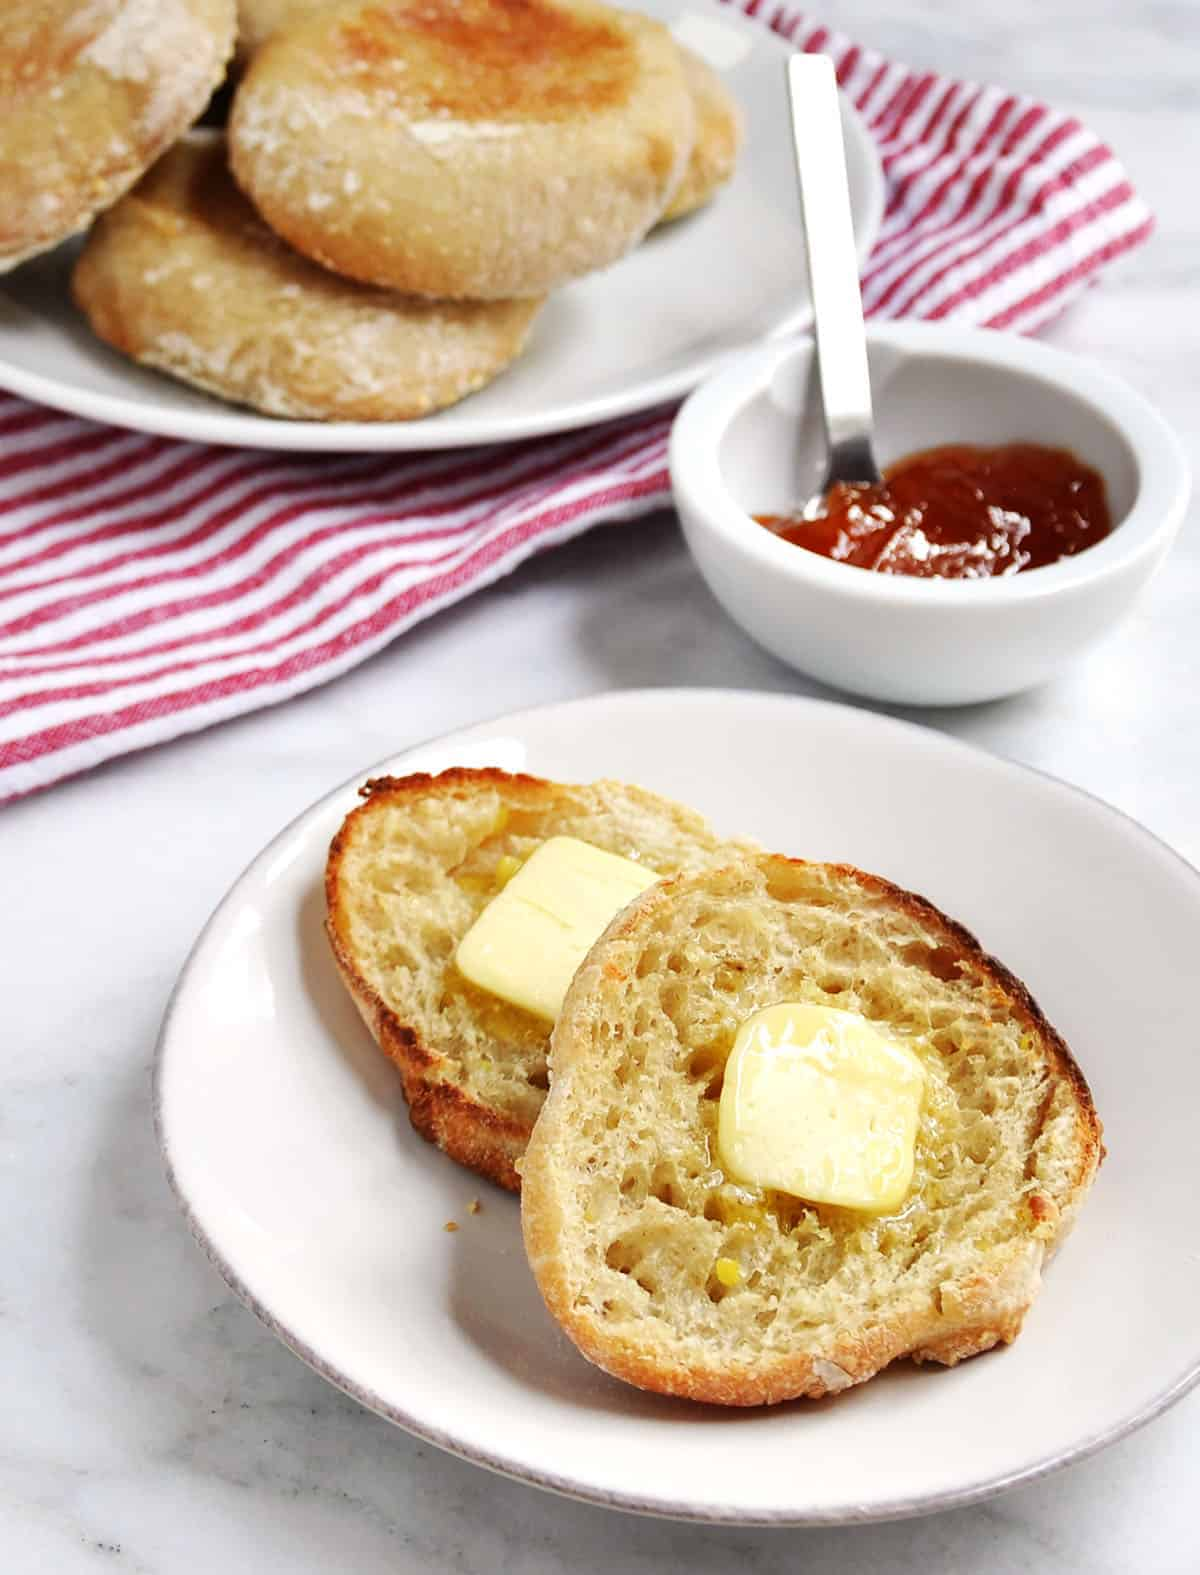 homemade English Muffins served with butter and jam